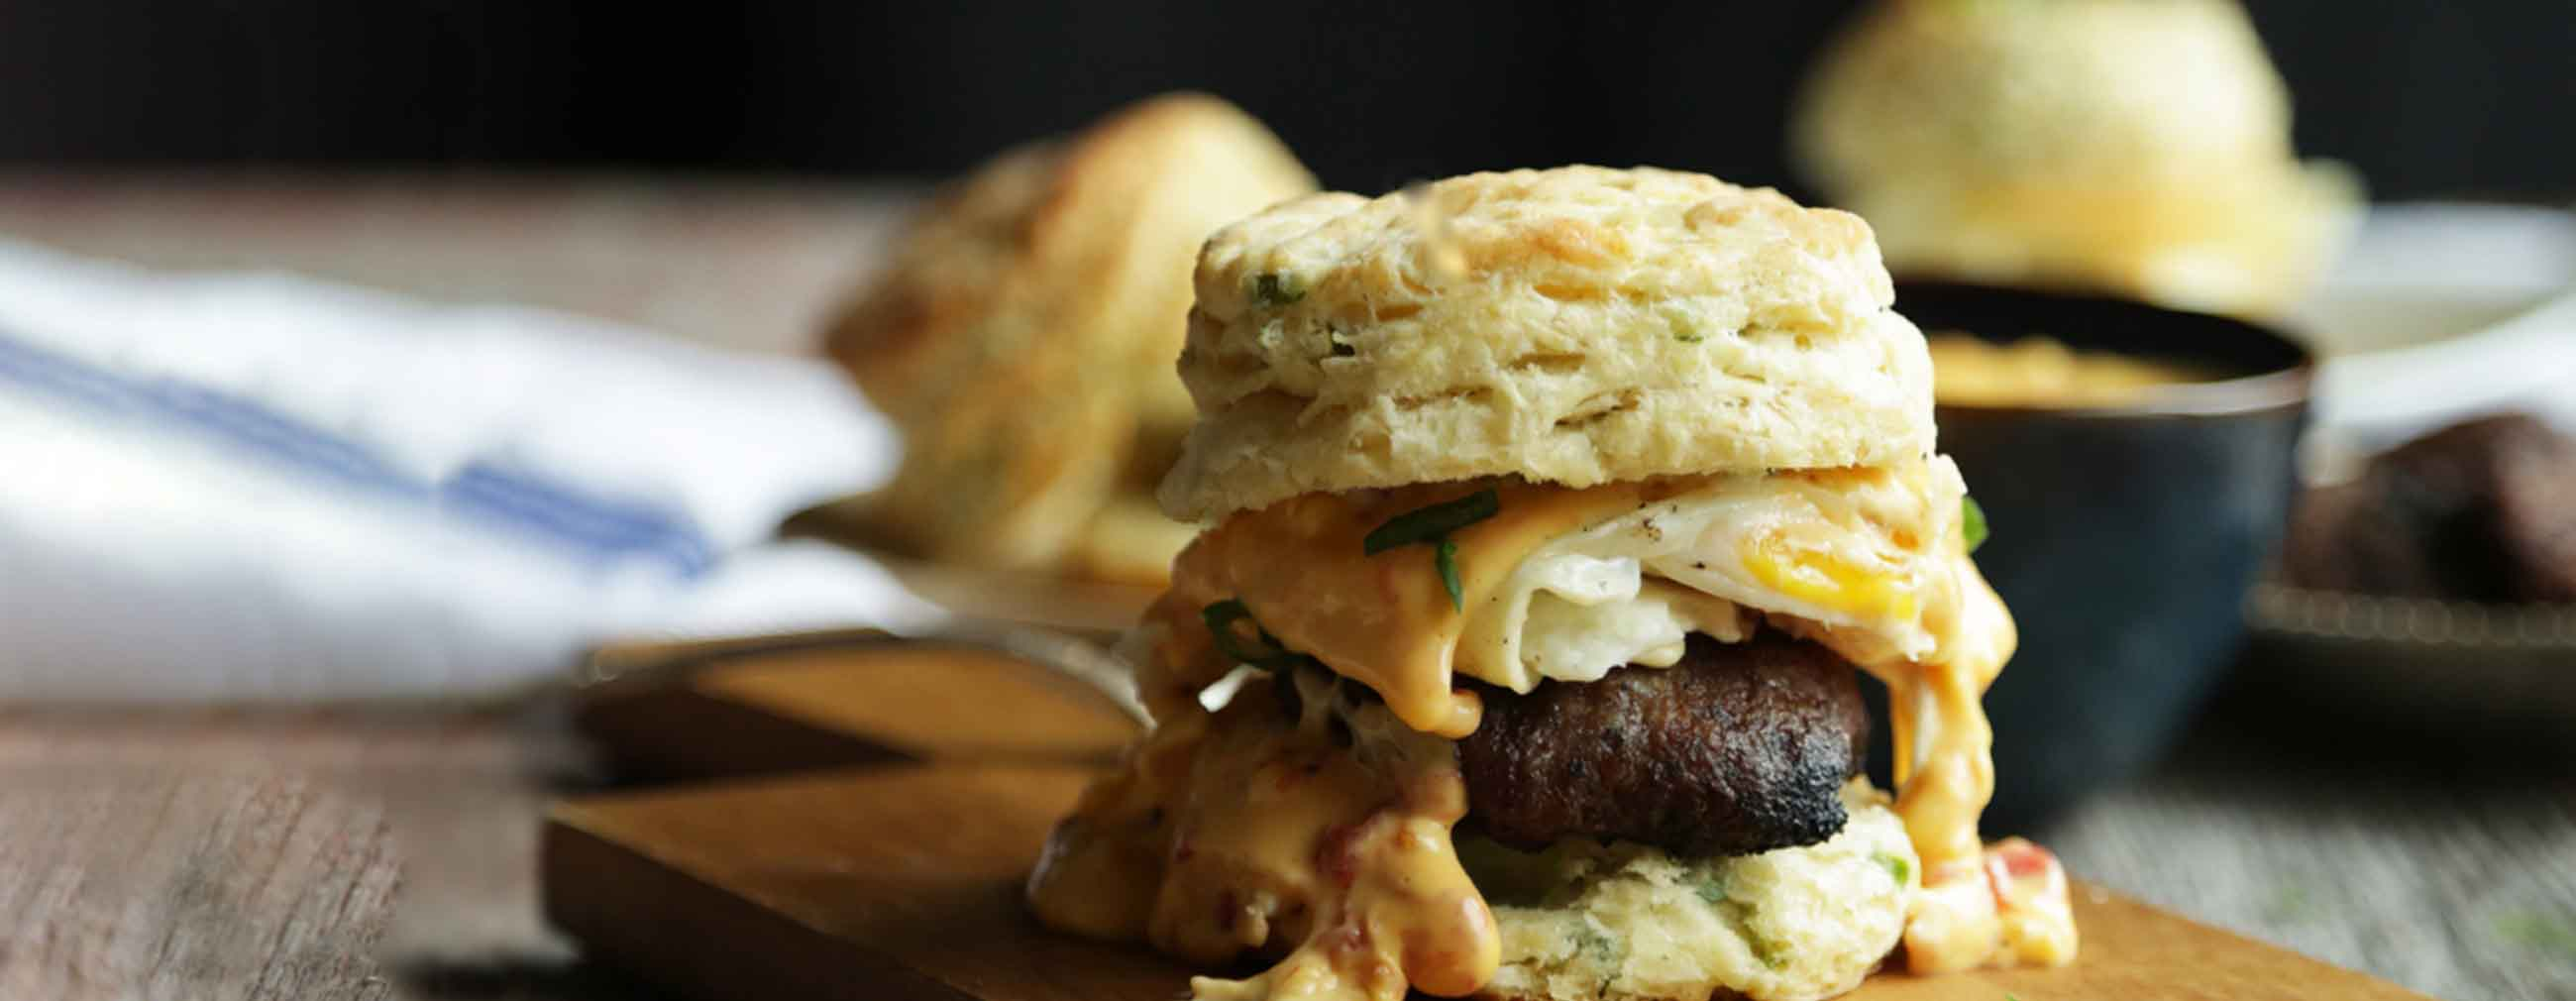 Egg, Sausage and Queso Breakfast Sandwiches